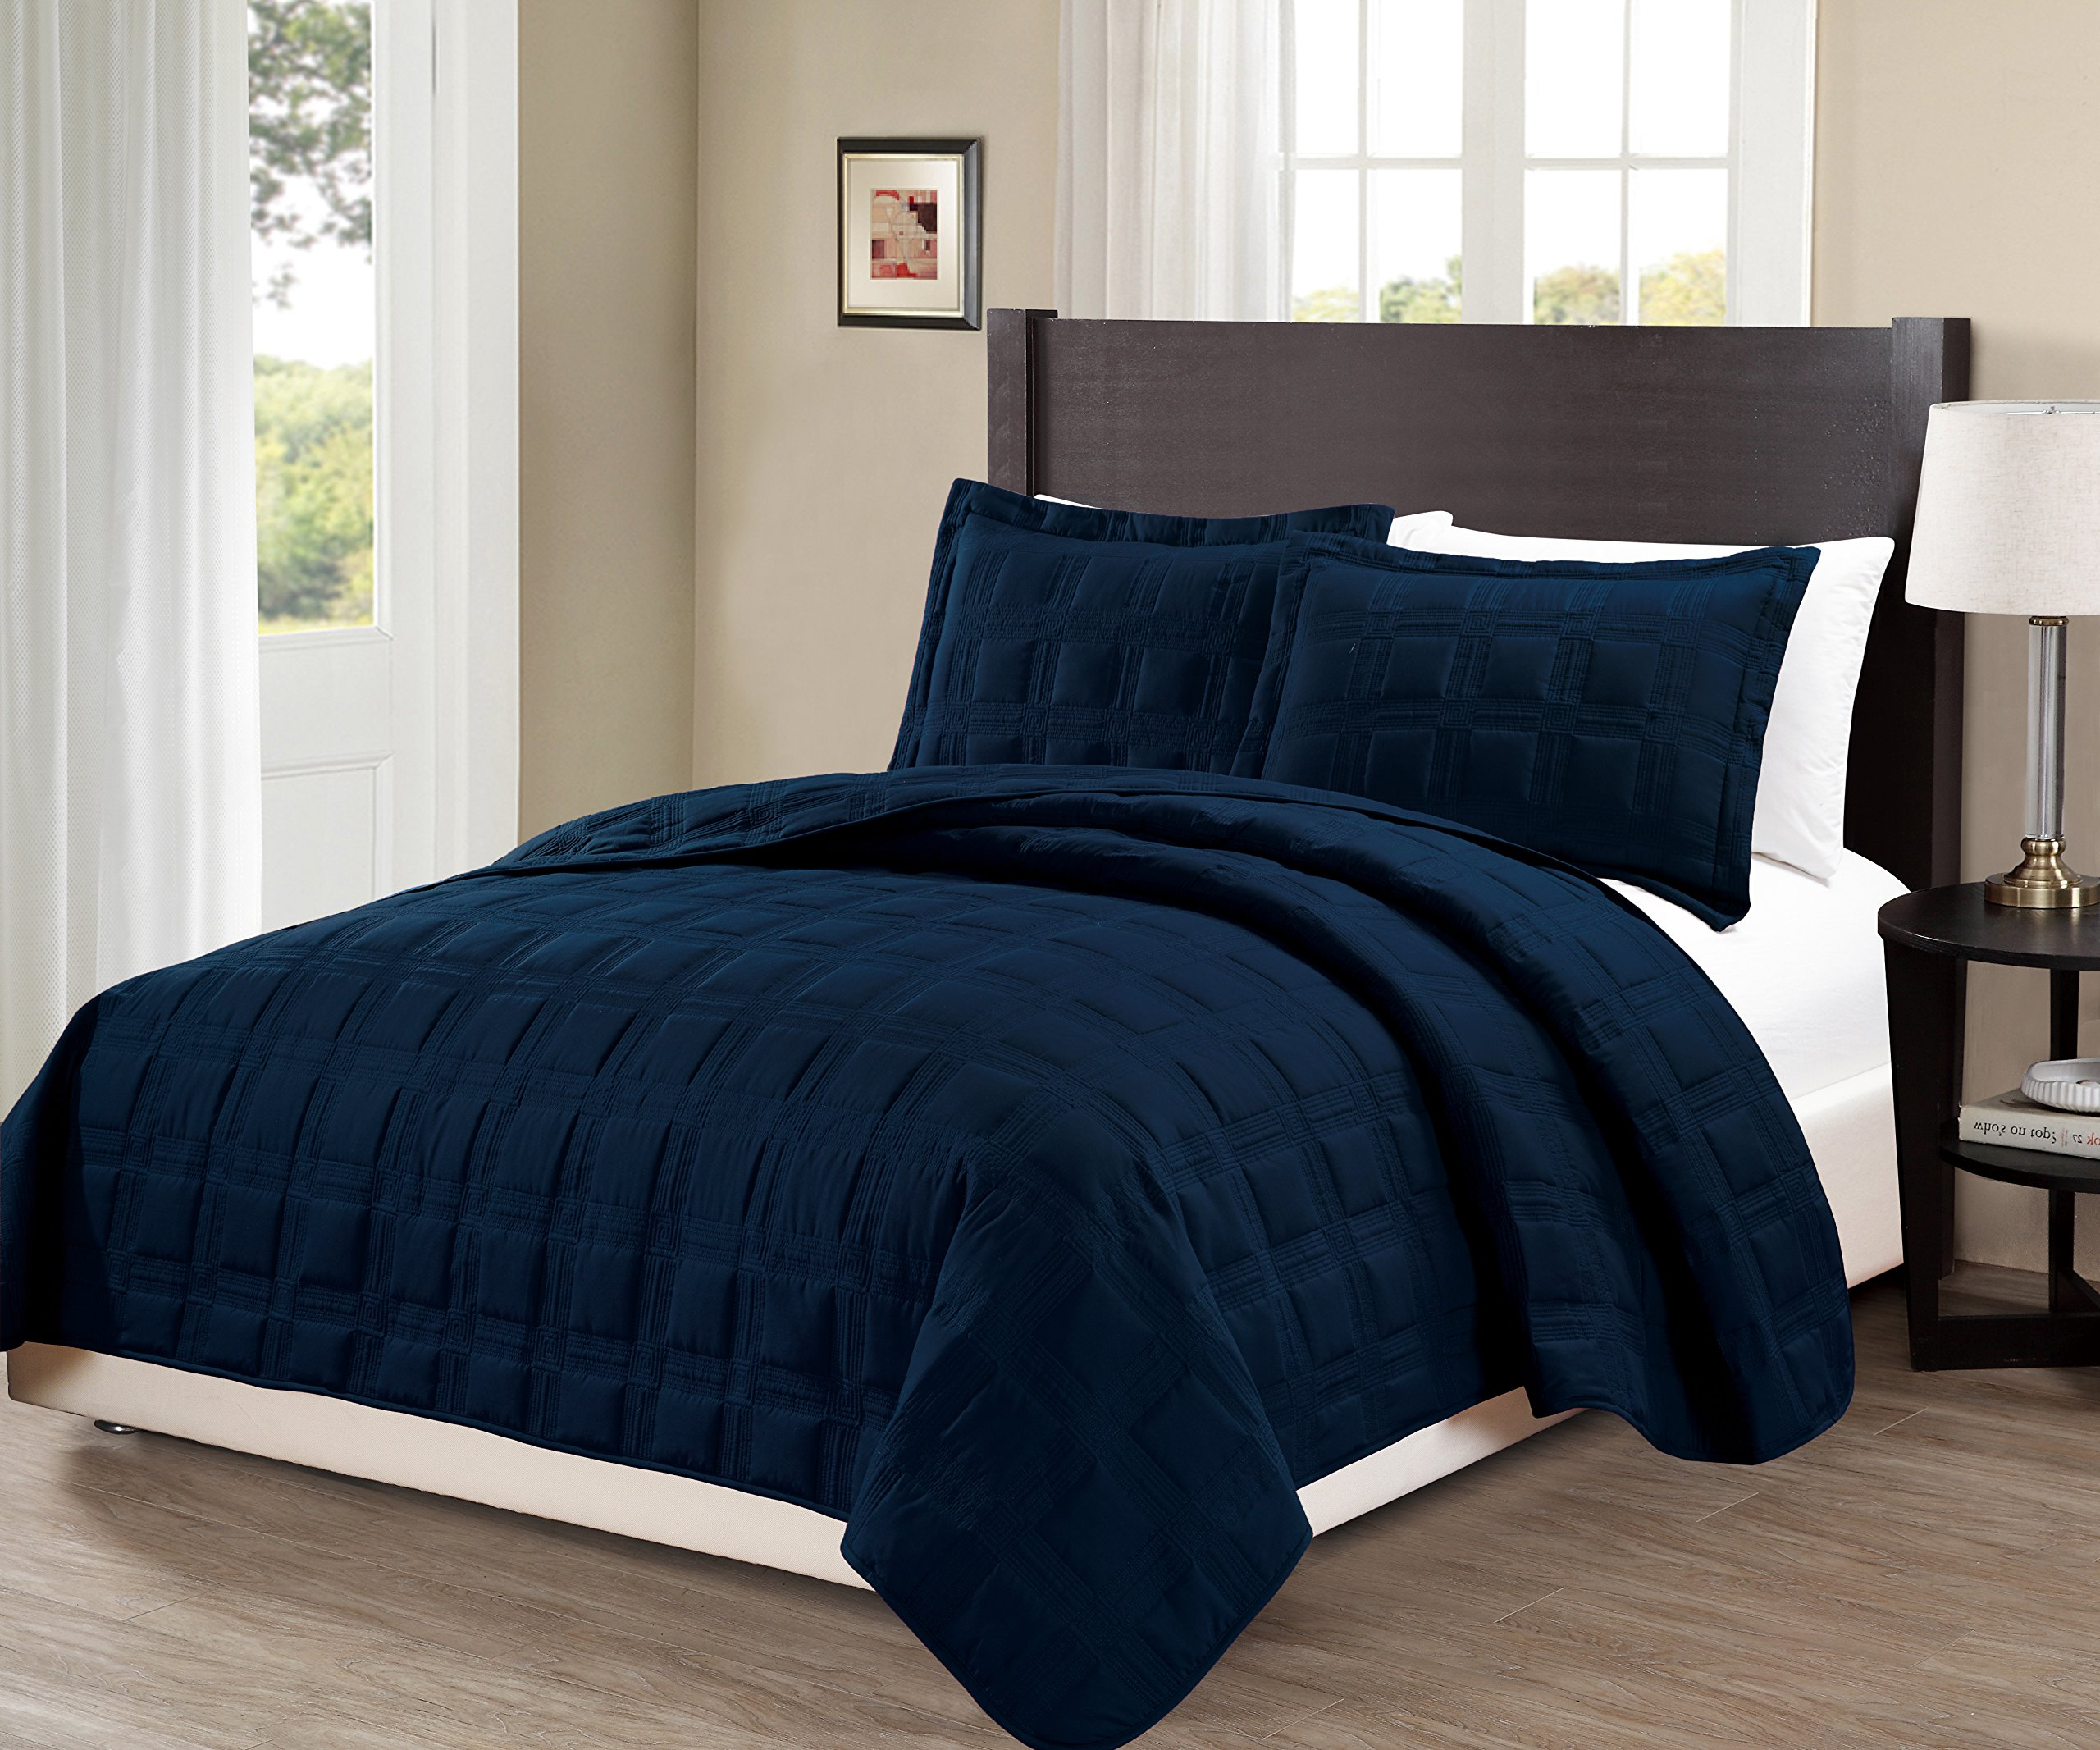 MK Home Mk Collection Target Bedspread Bed-cover Quilted Embroidery solid Navy Blue New King/California King 118'' x 106''